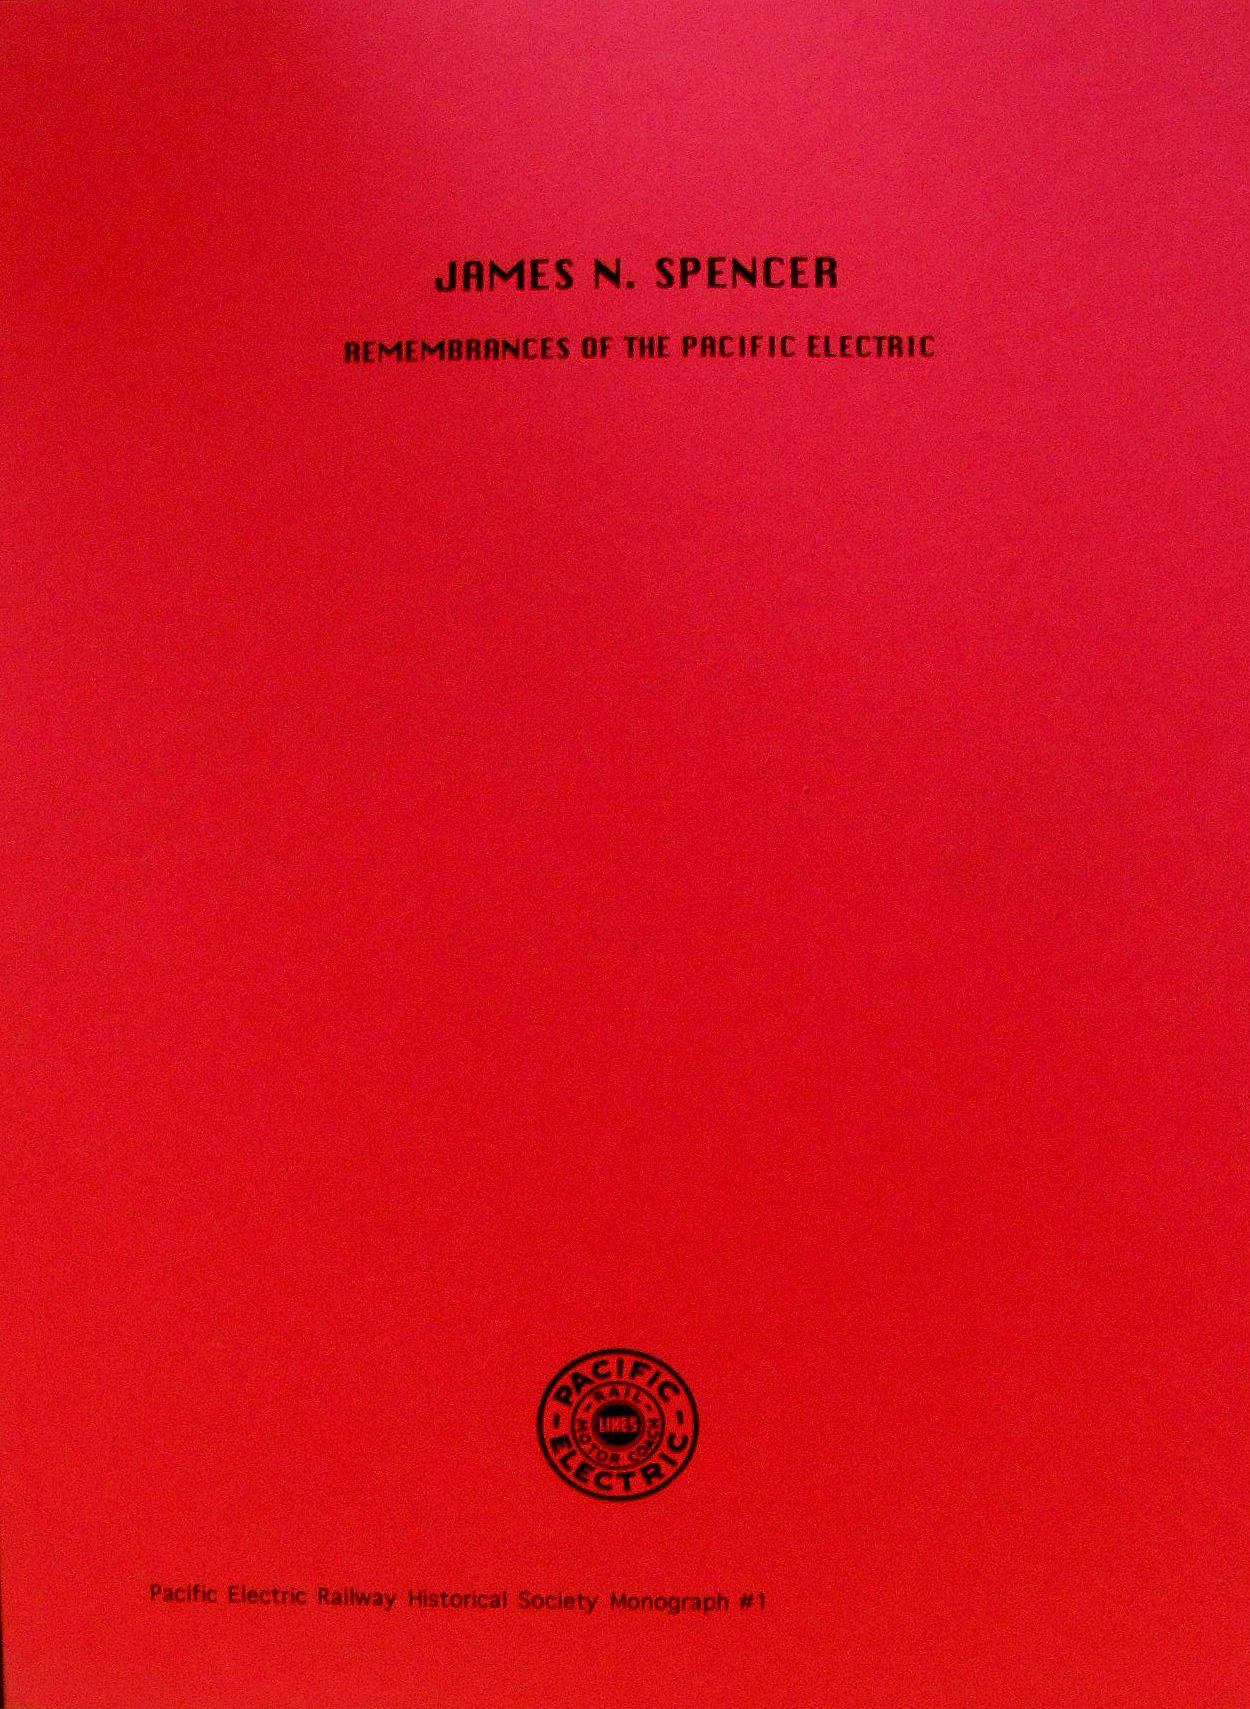 Monograph #1: James N. Spencer: Remembrances of the Pacific Electric